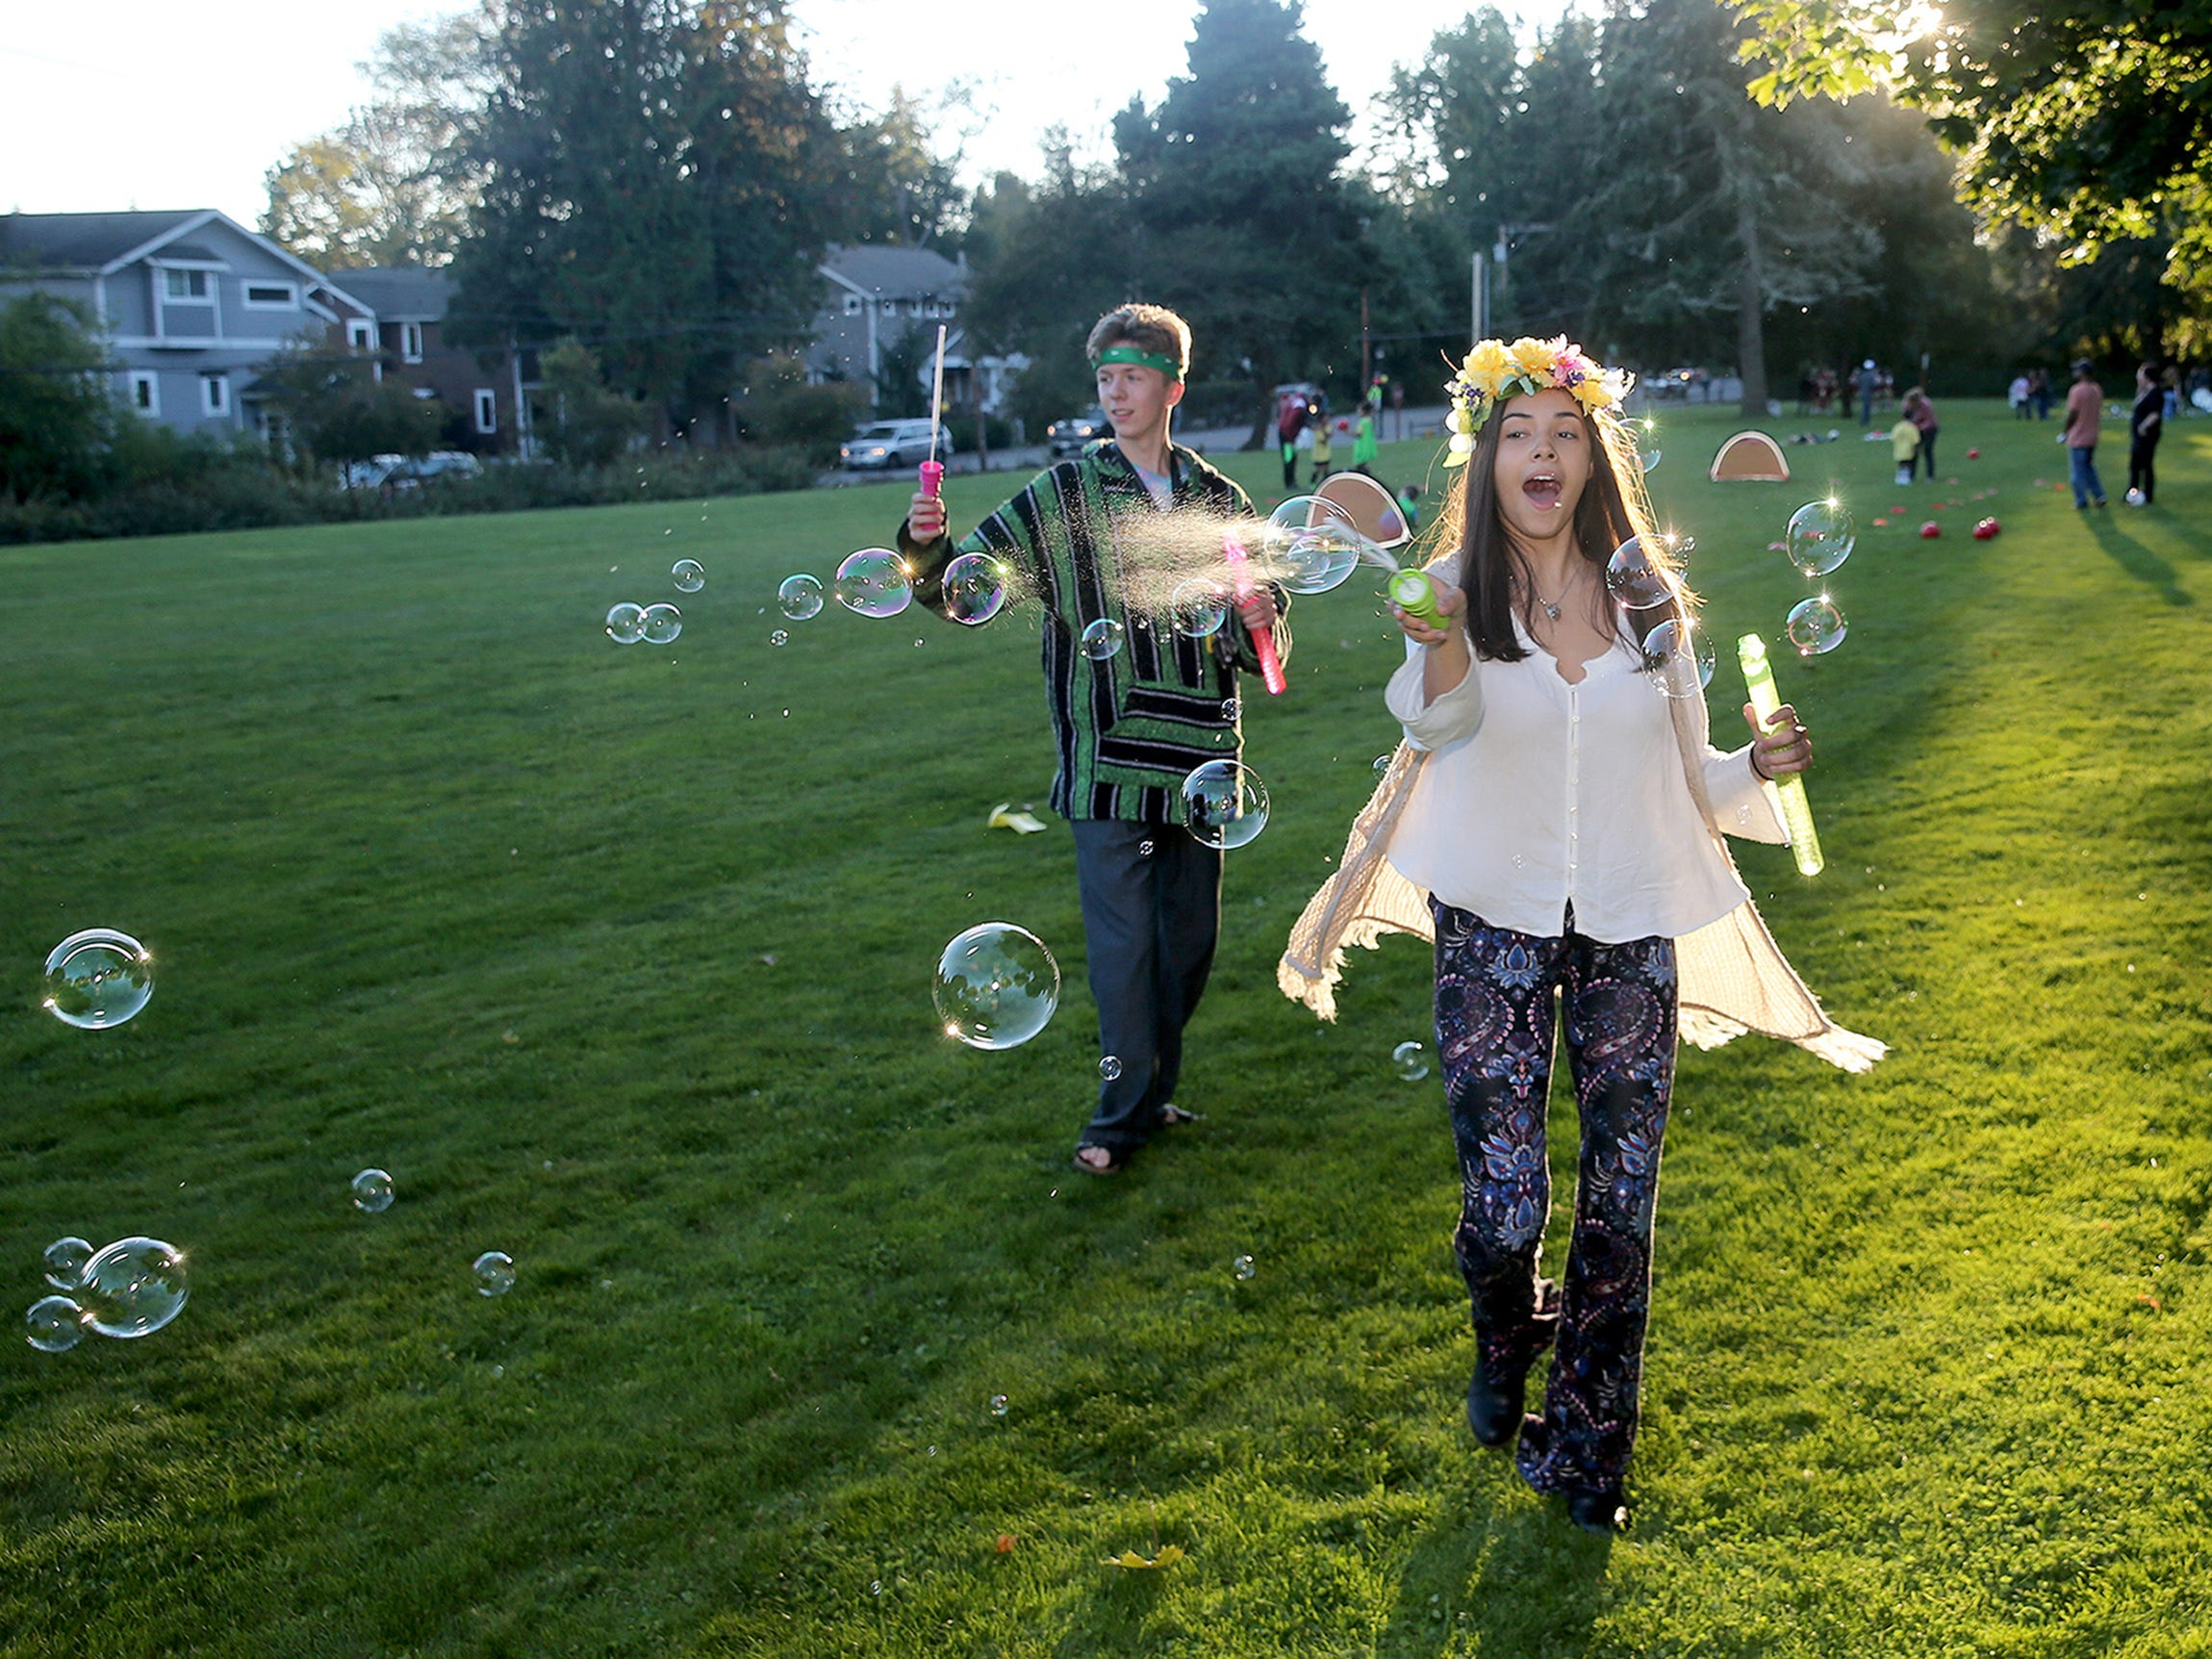 Kingston High School junior Justice Correa-West, 16, dressed as a 1960's hippy makes bubbles before the start at the annual Kingston High School Homecoming parade which had a theme of different decades floats for the freshman through senior classes  started at the Village Green Park to Mike Wallace Park in Kingston on Wednesday, September 26, 2018.